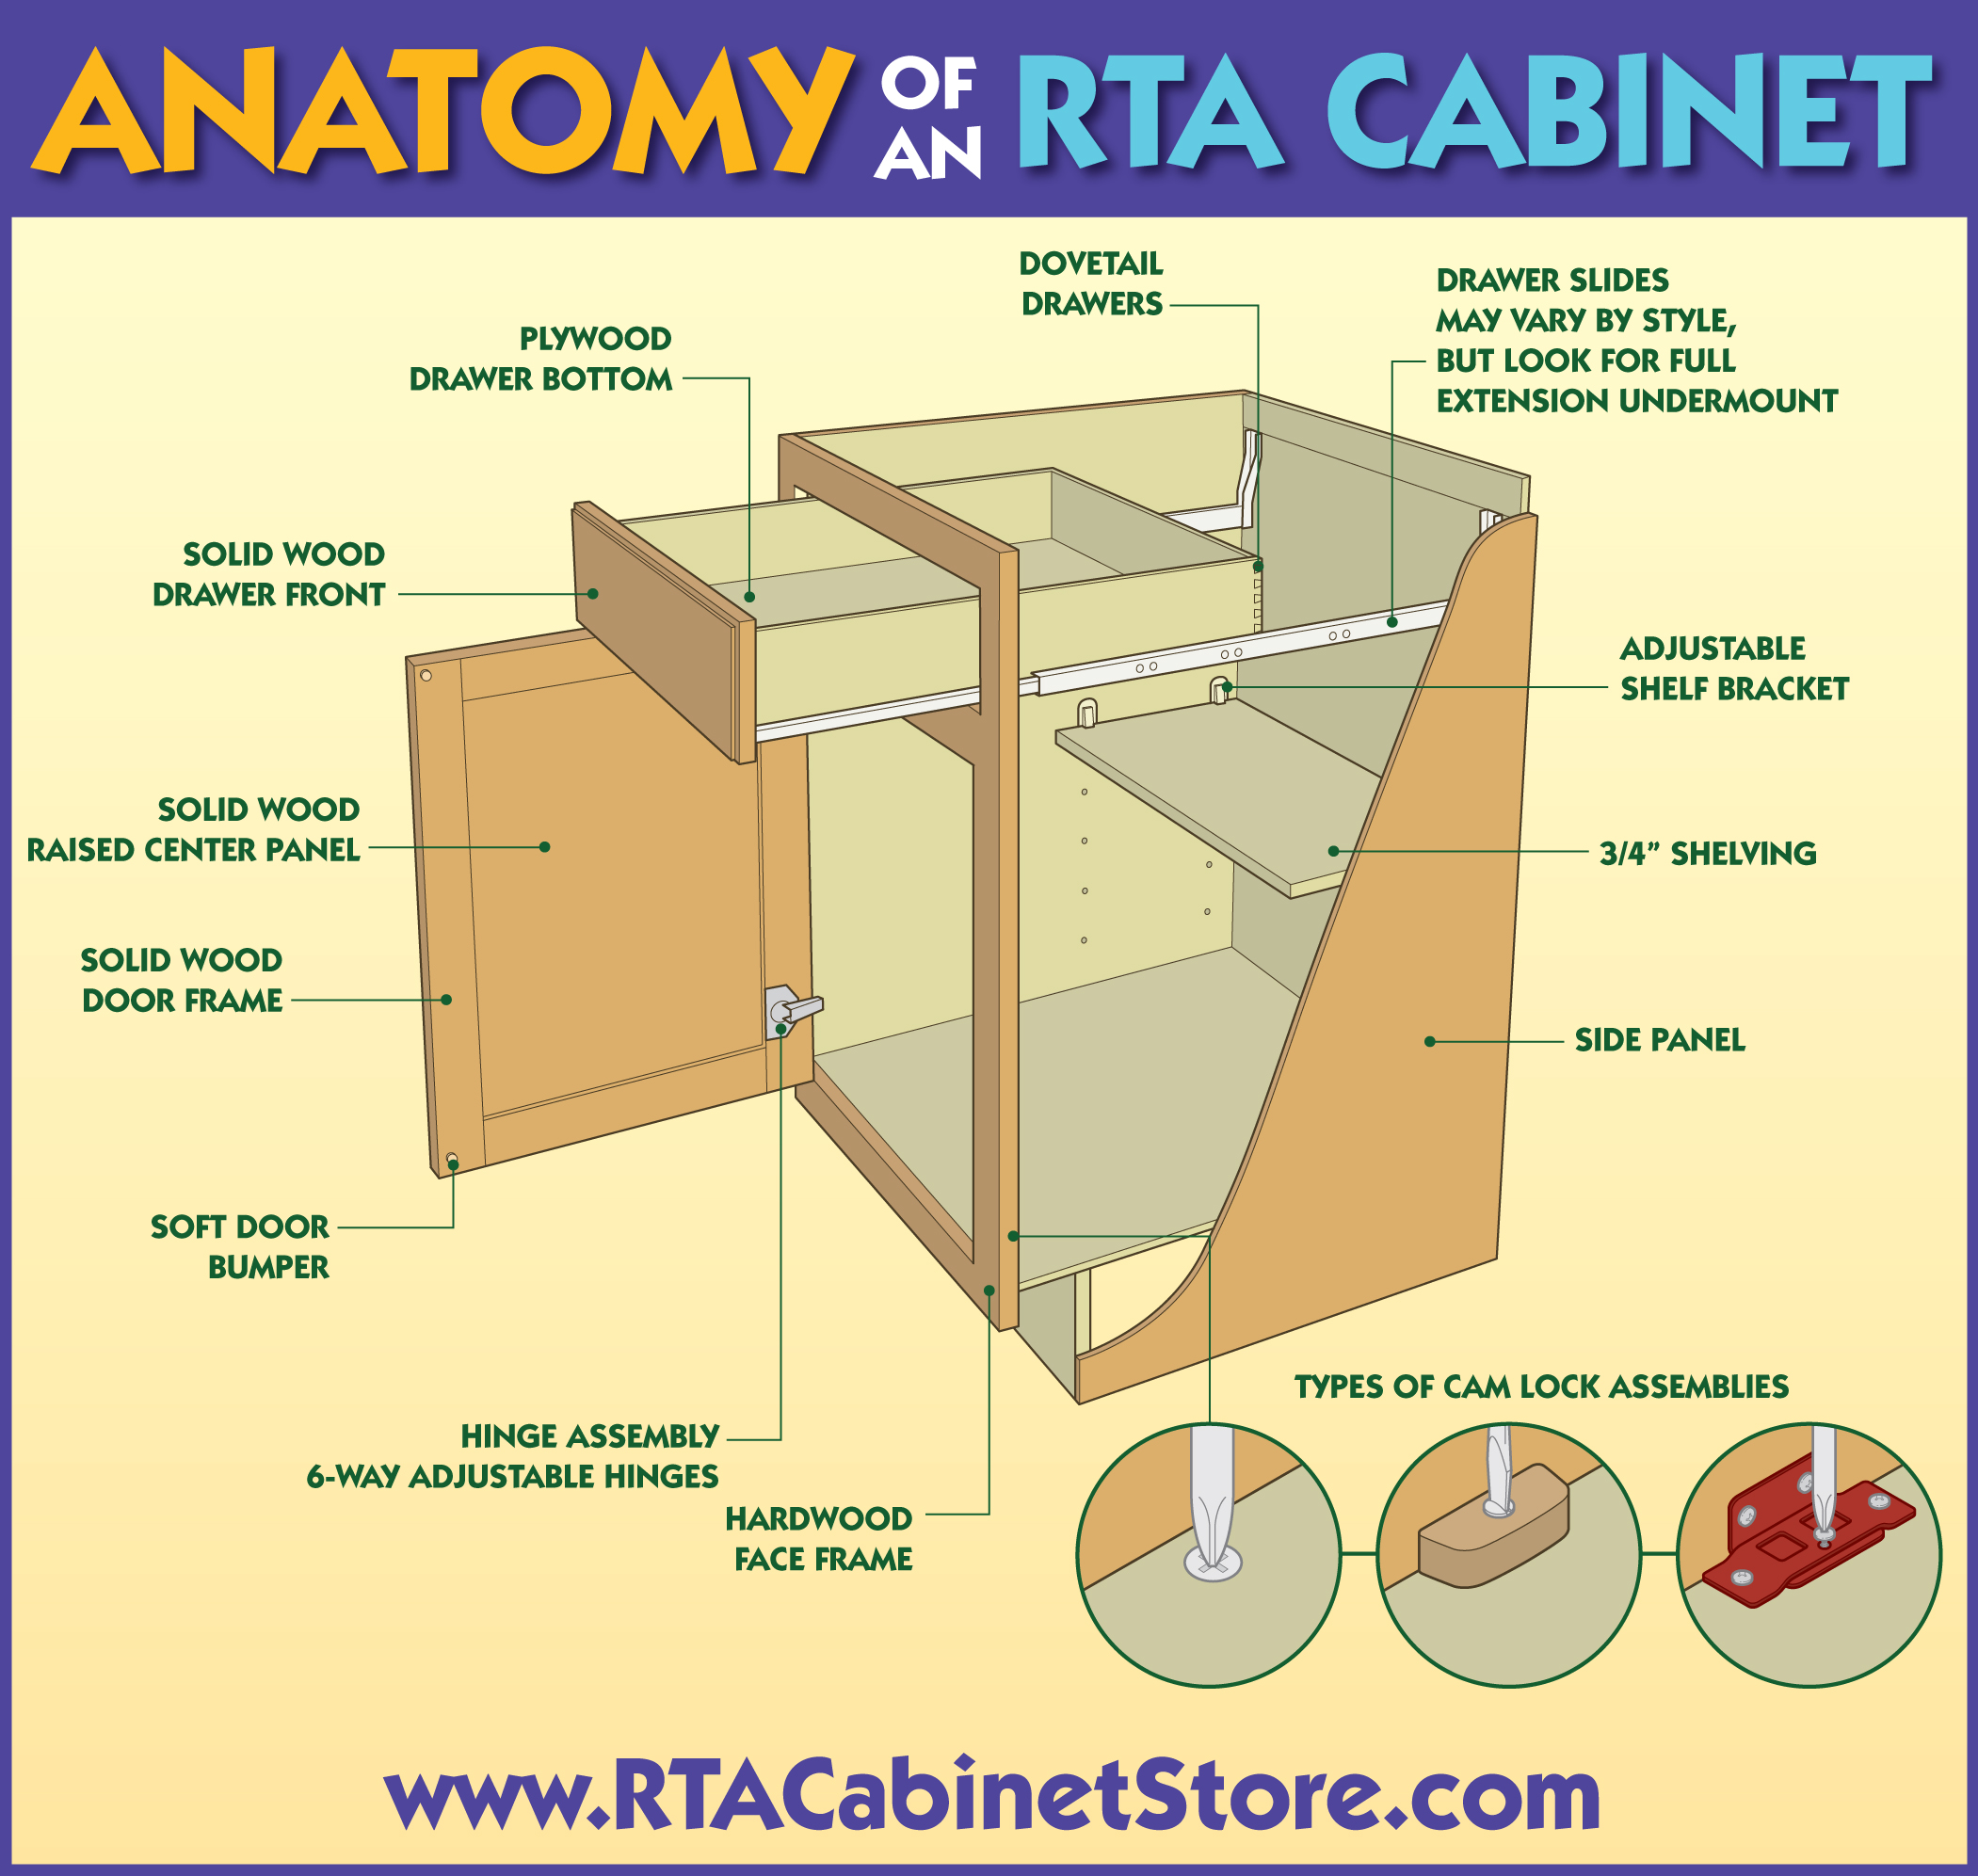 Rta Kitchen Cabinets Free Shipping Anatomy Of An Rta Cabinet Rta Kitchen Cabinets